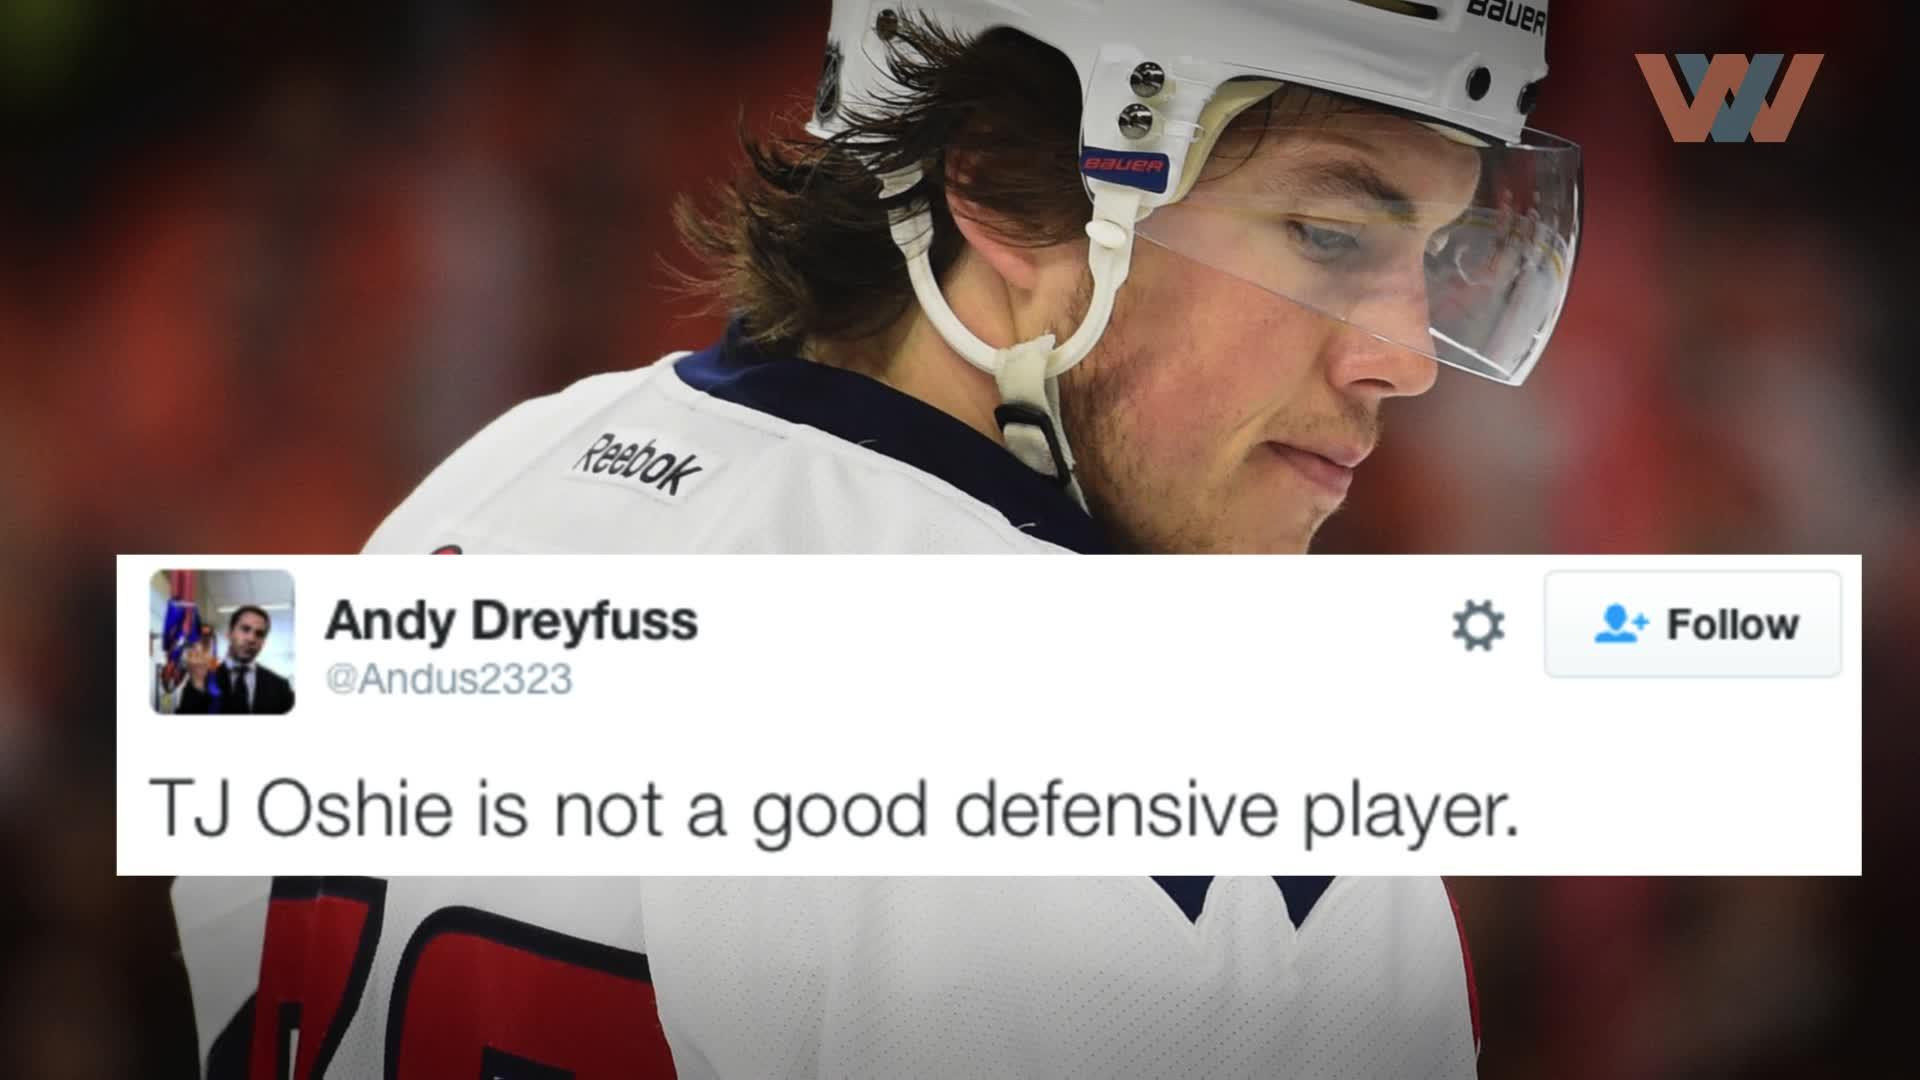 Image of Tweetbusters: T.J. Oshie